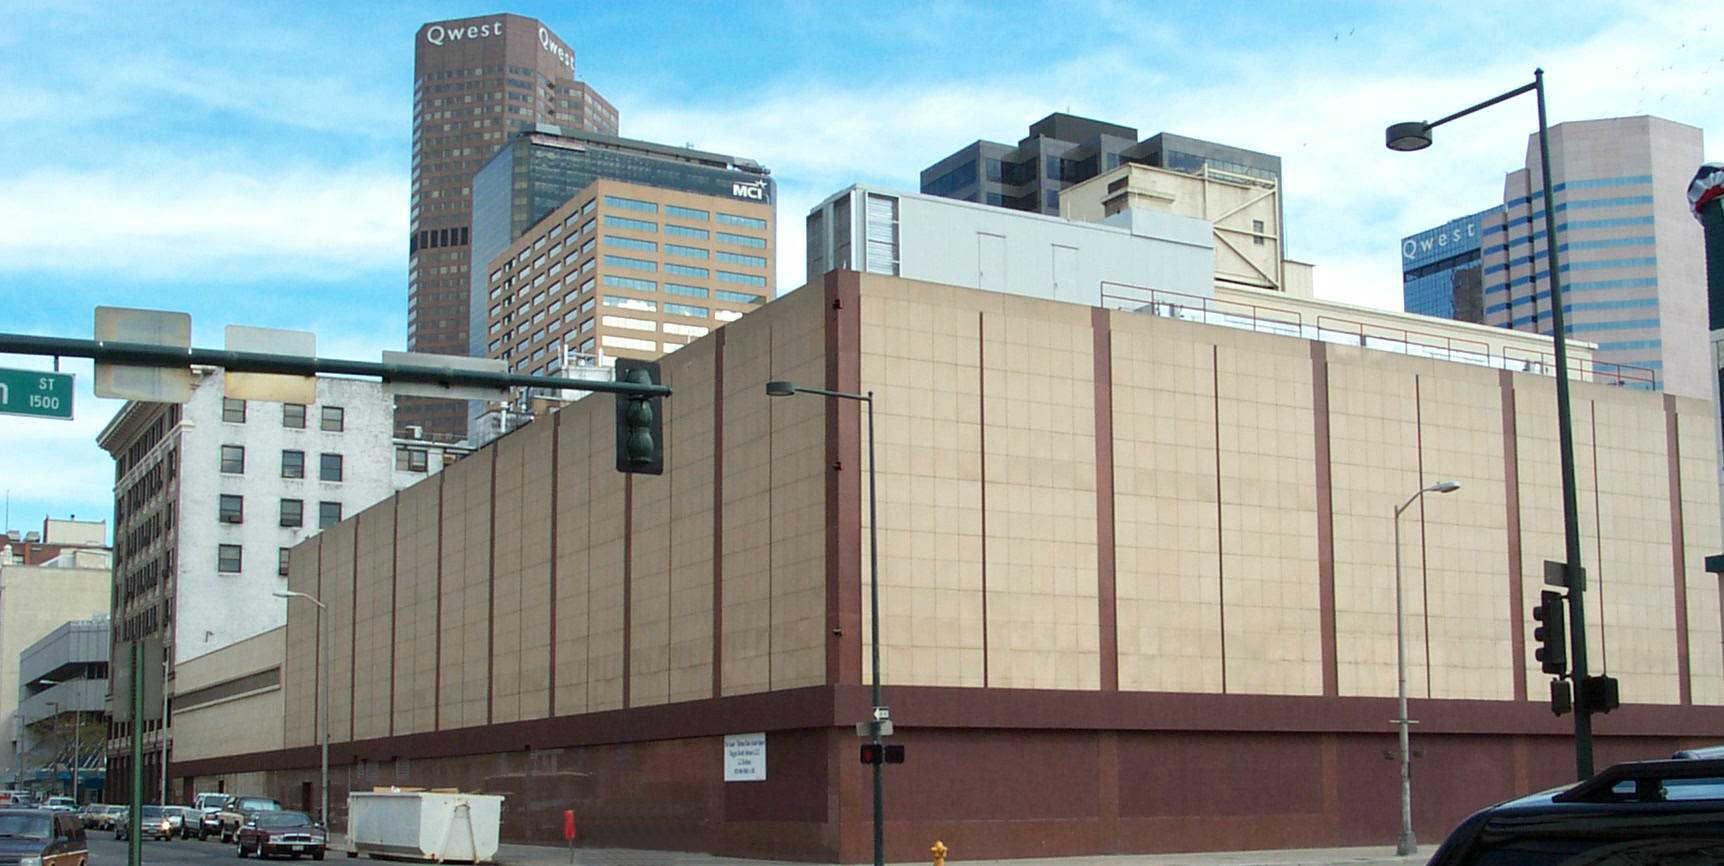 FORMER MAY COMPANY BUILDING    COMMERCIAL USE - Denver, CO    135,000 square foot data/telecom building in downtown Denver